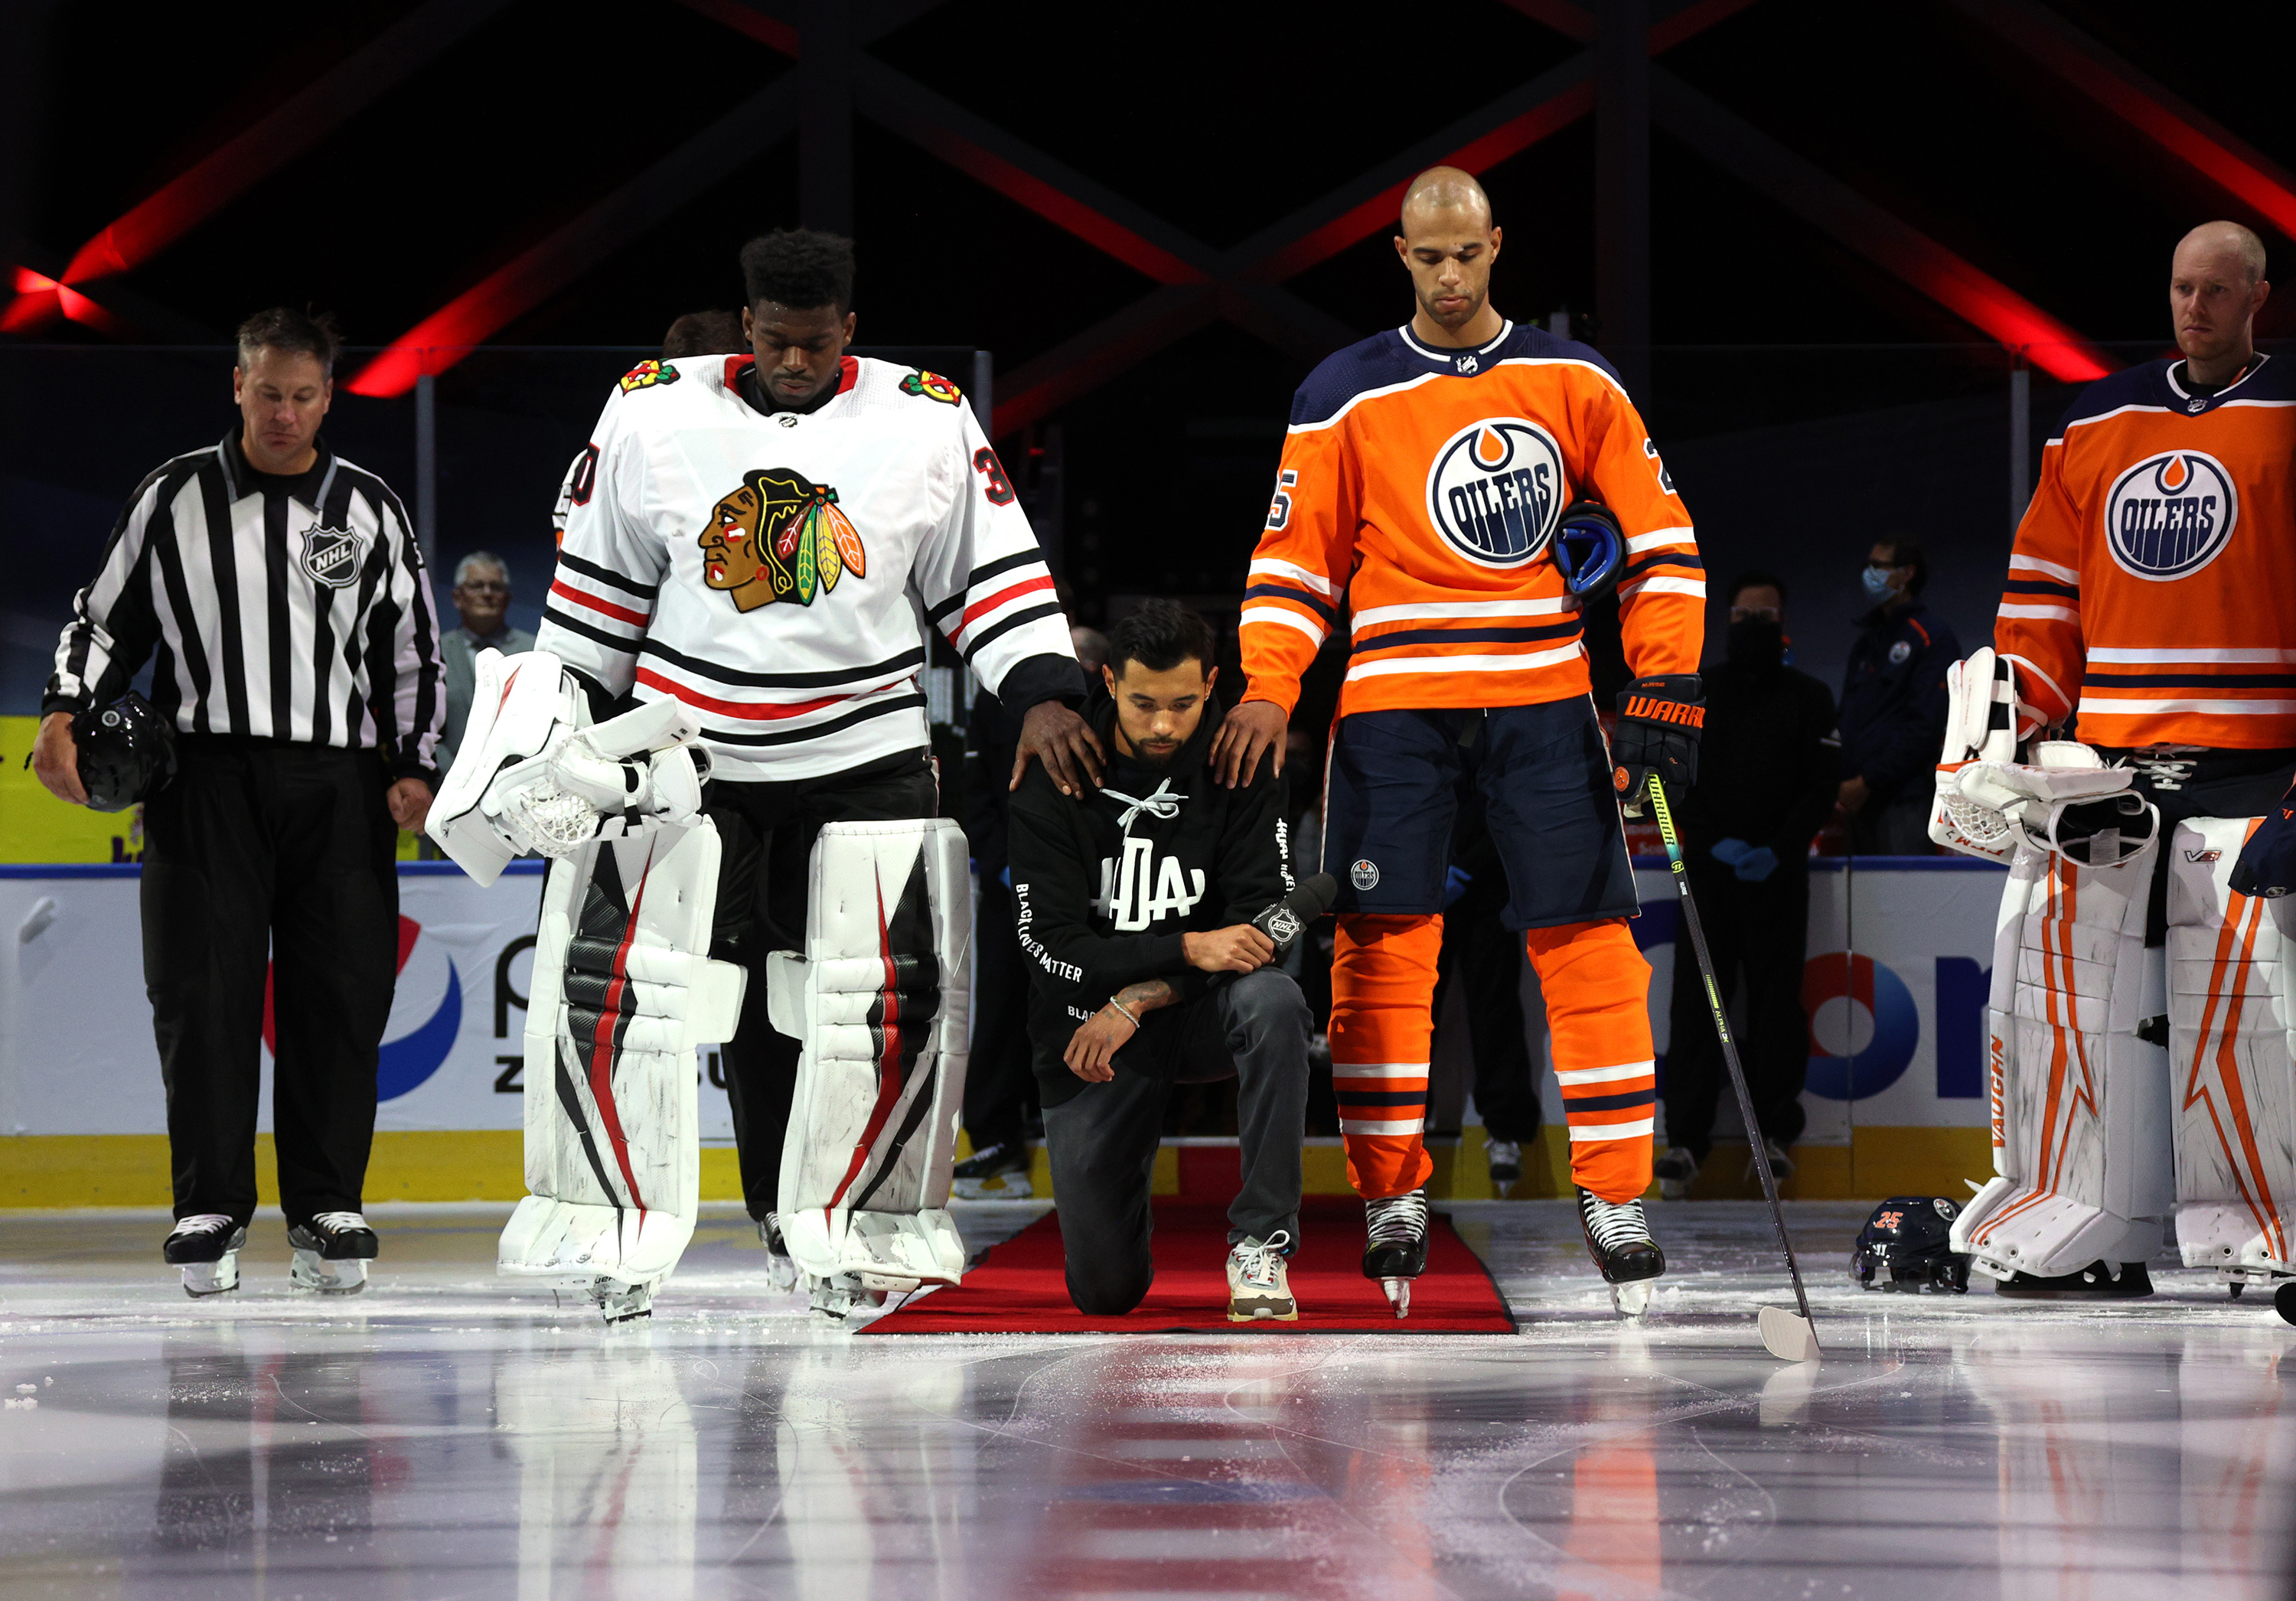 On Aug. 1, Dumba, a Filipino-Canadian player, became the first NHLer to take a knee, with support from Subban (left) and Nurse (Dave Sandford/NHLI/Getty Images)